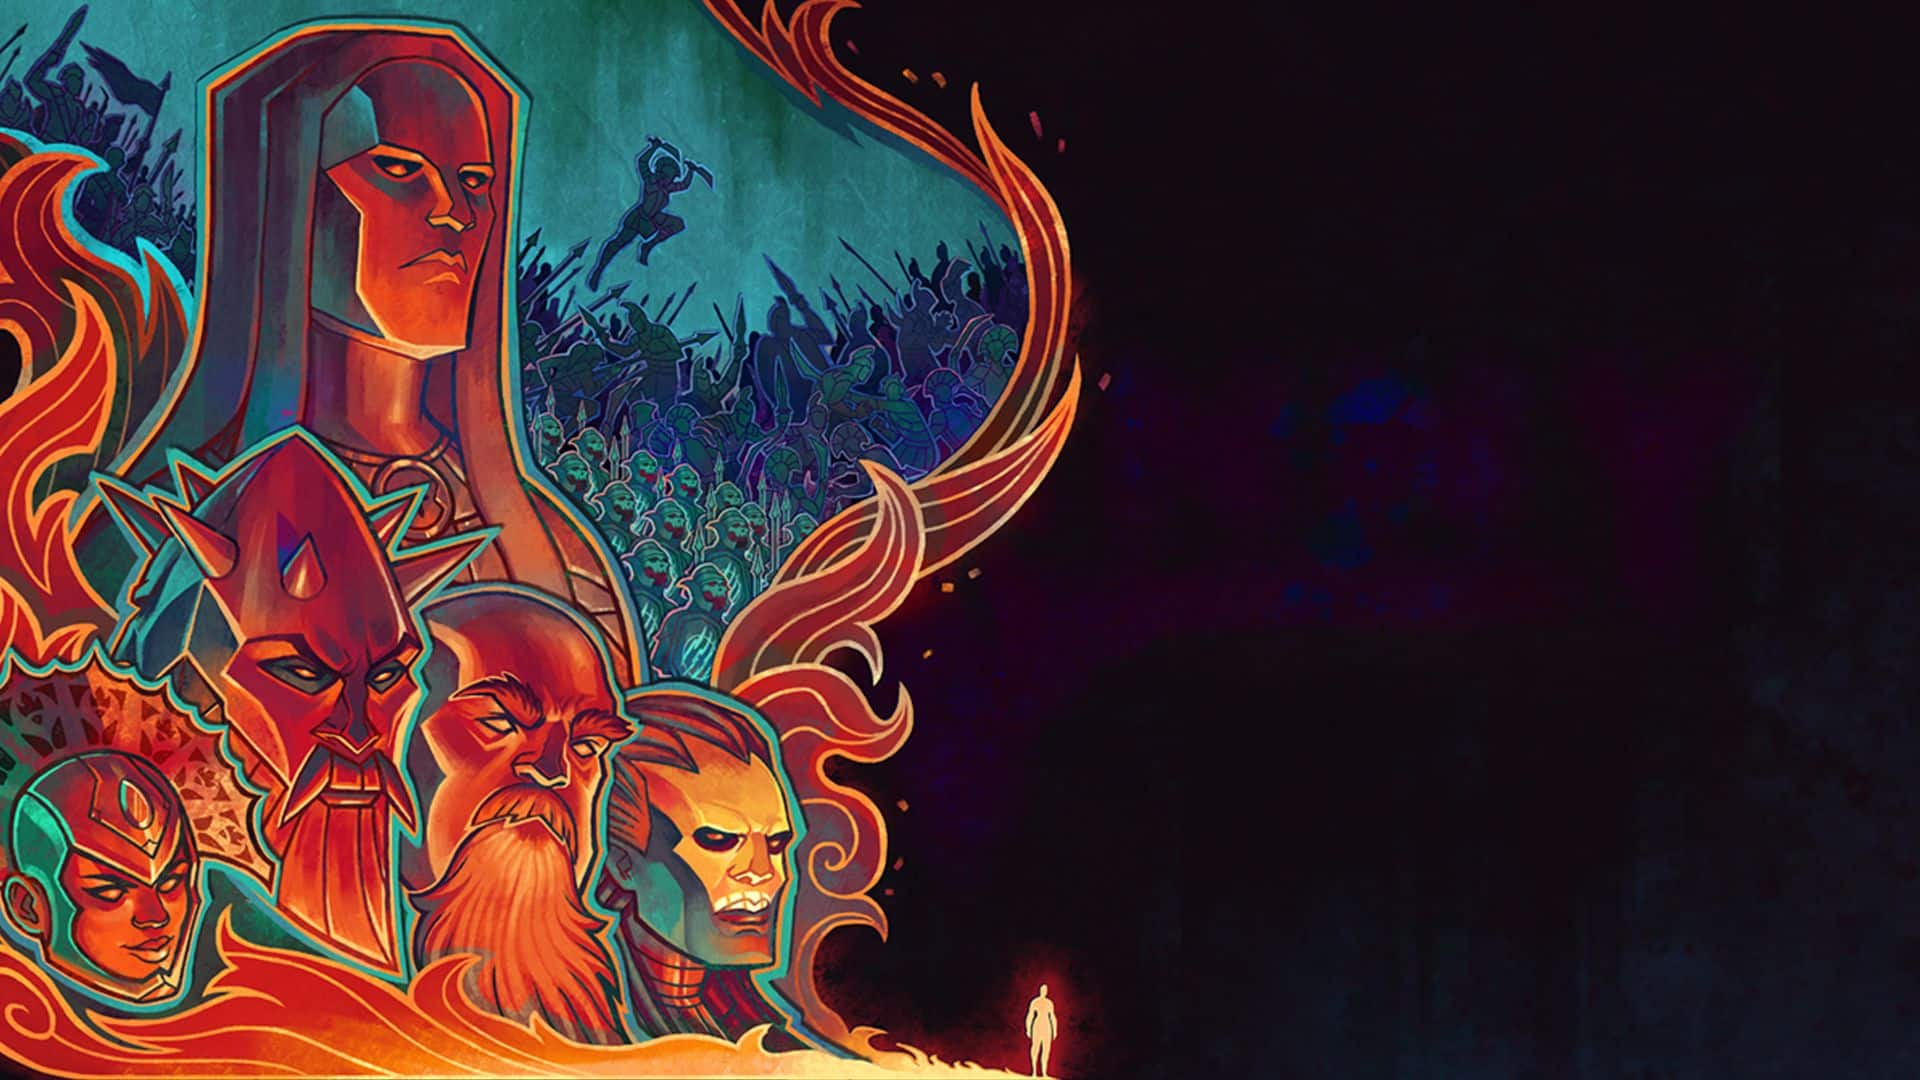 Tyranny - Conqueror's bundle (PC Digital Download) $25.94 via Steam